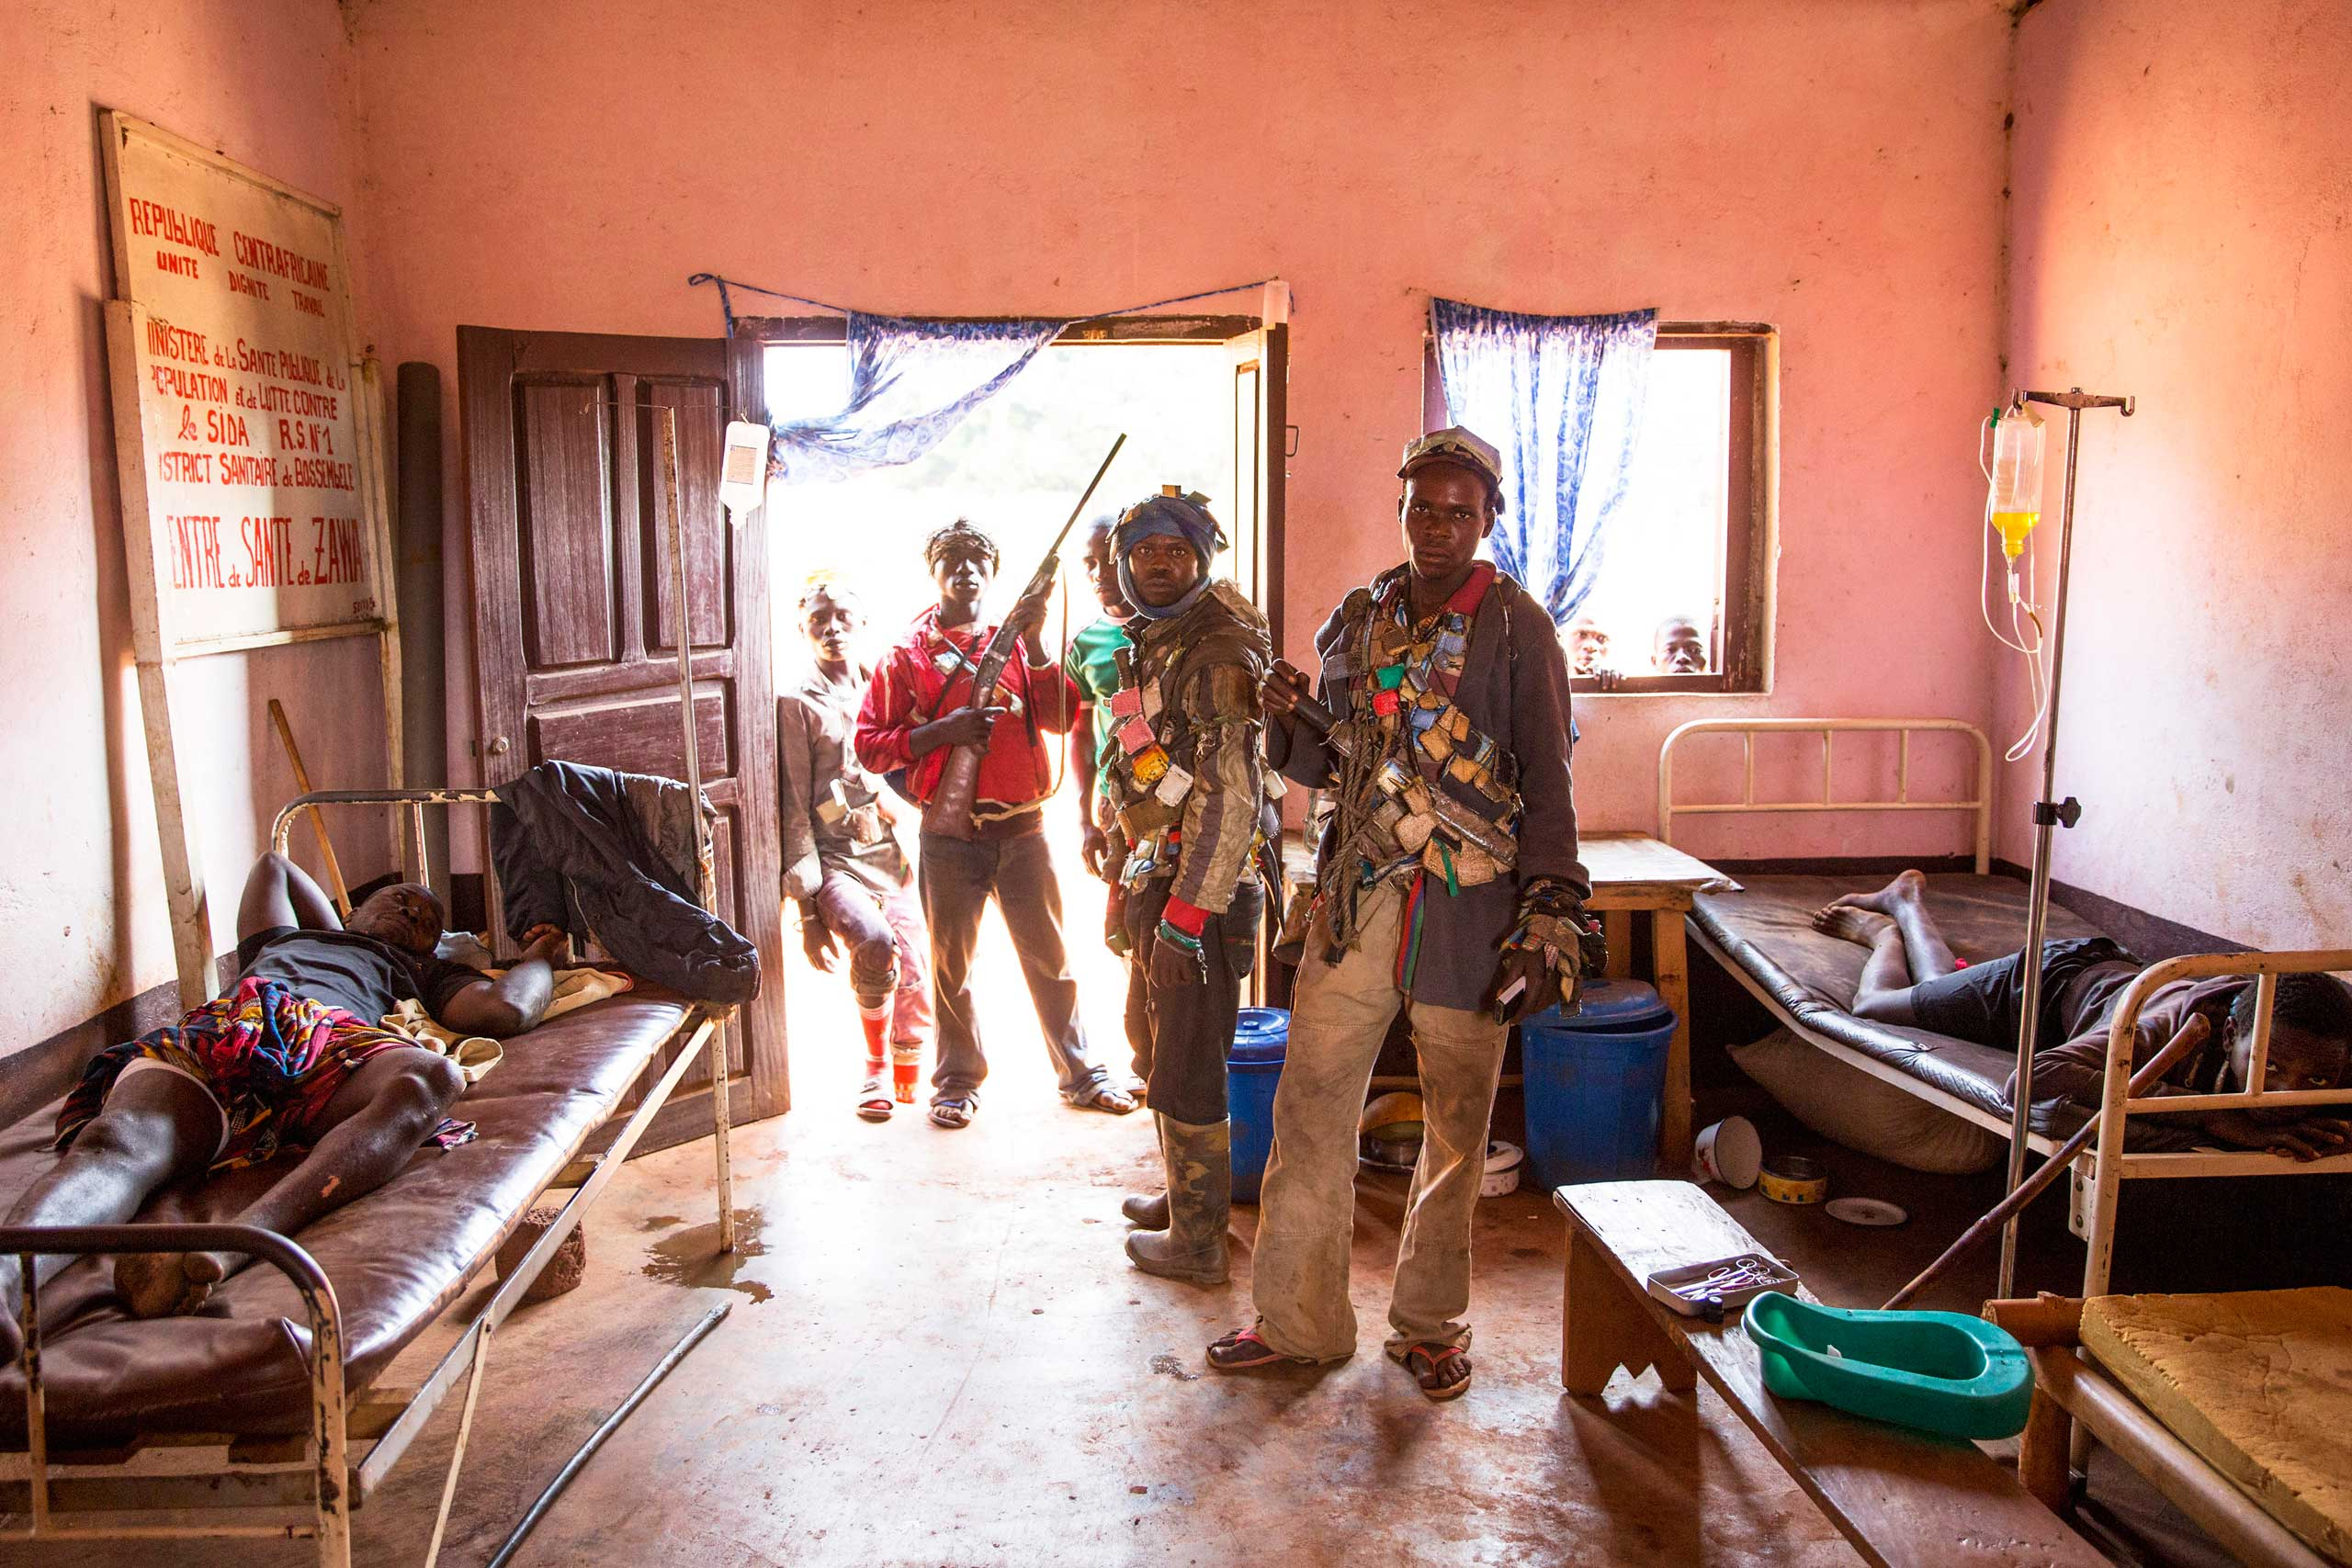 Jan 25. 2014: Anti-balaka in the medical center in Zawa, where some of their wounded comrades were being treated after fighting Séléka fighters.